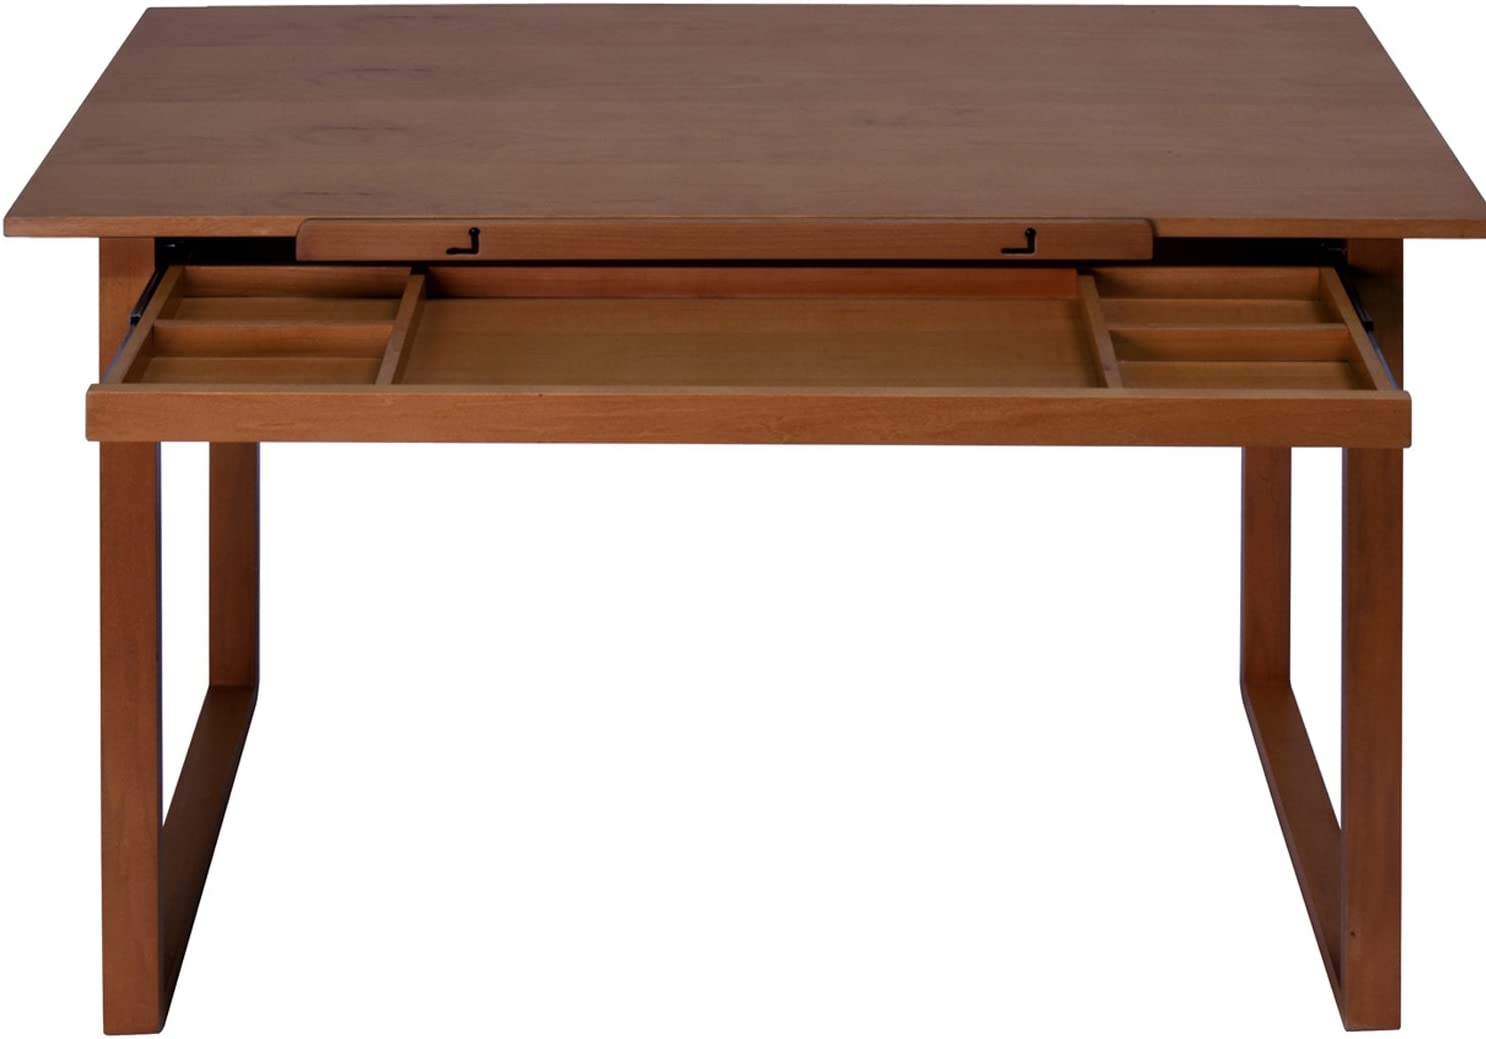 Offex Ponderosa Wood Topped Table Sonoma, Brown